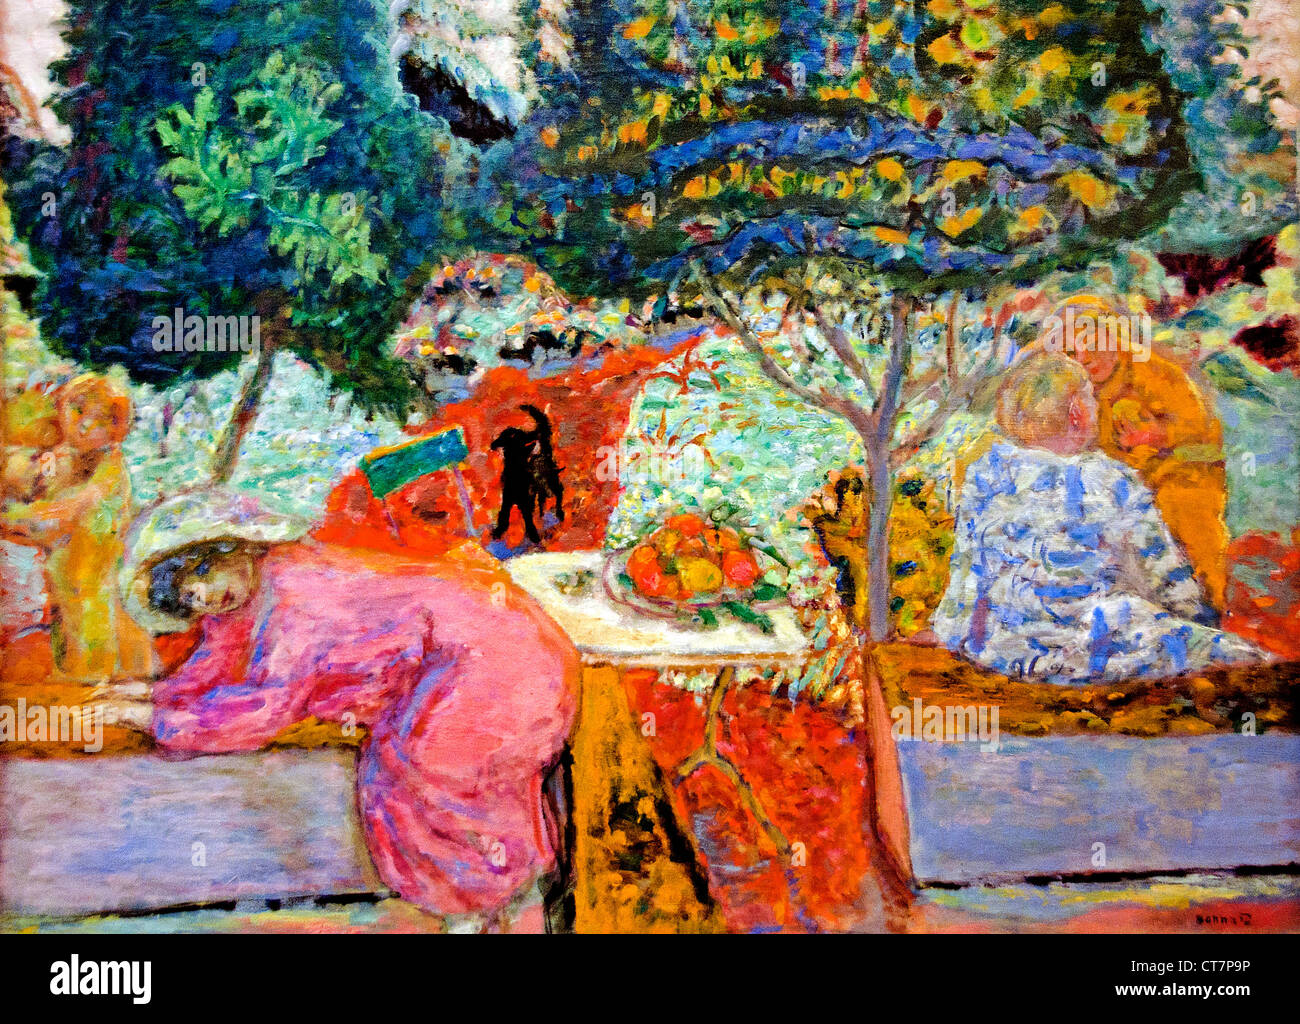 Morning in the Garden 1917 Pierre Bonnard 1867 - 1947 France French - Stock Image